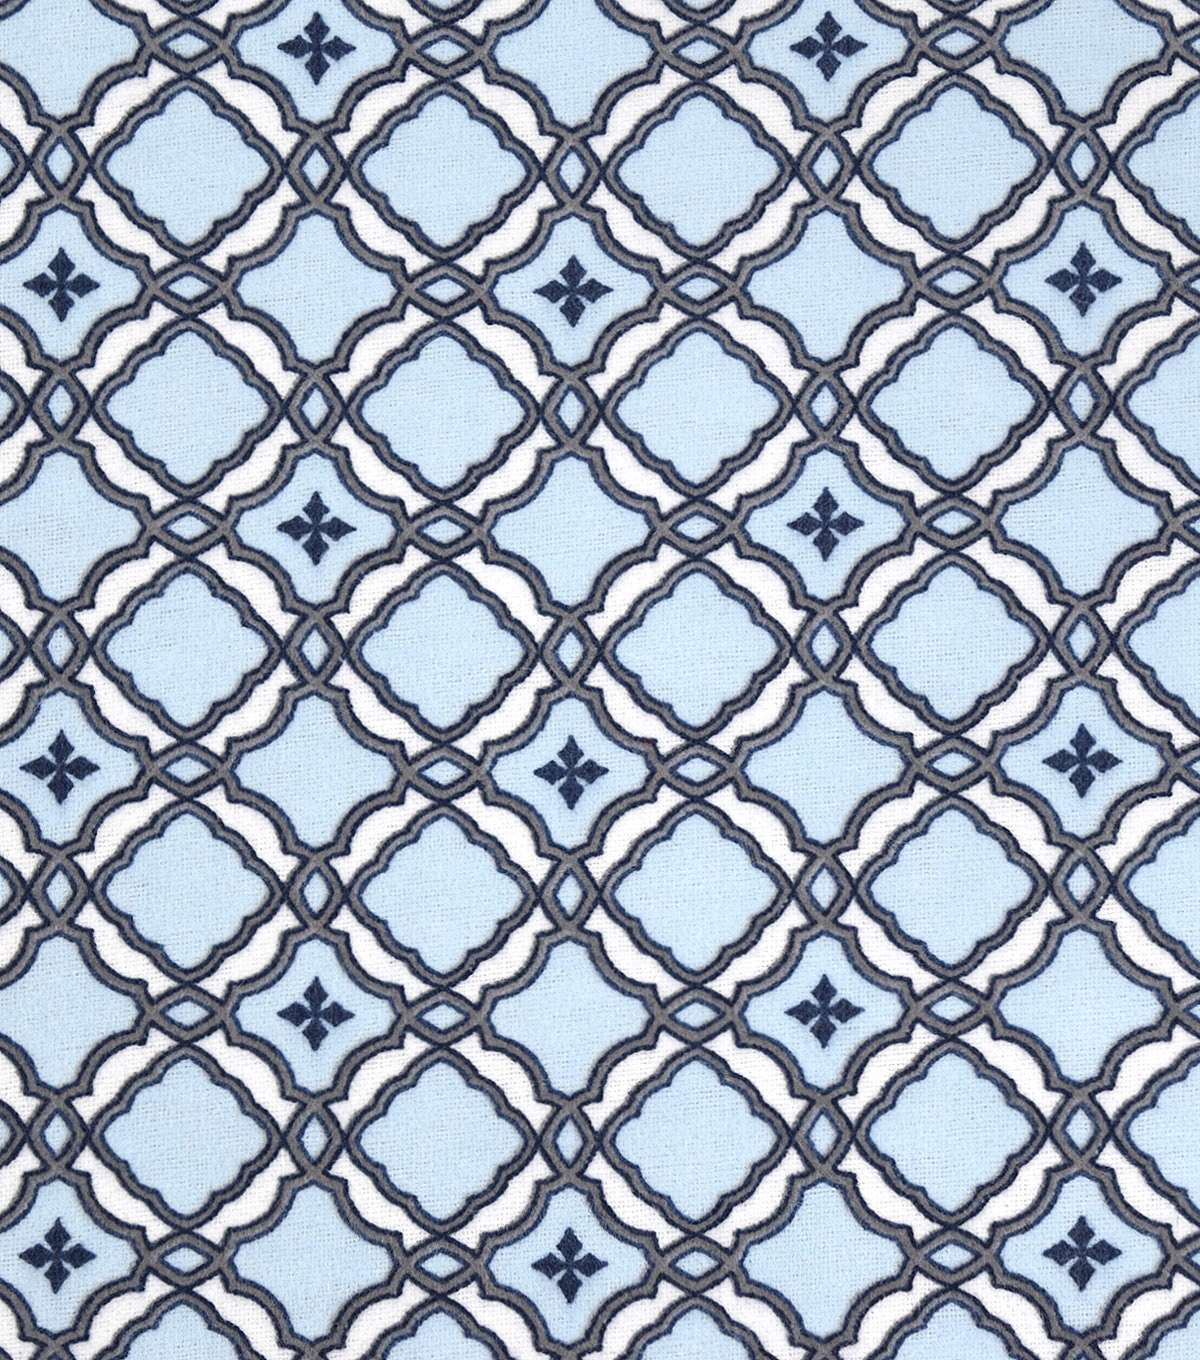 Snuggle Flannel Fabric -Spa Link Medallion